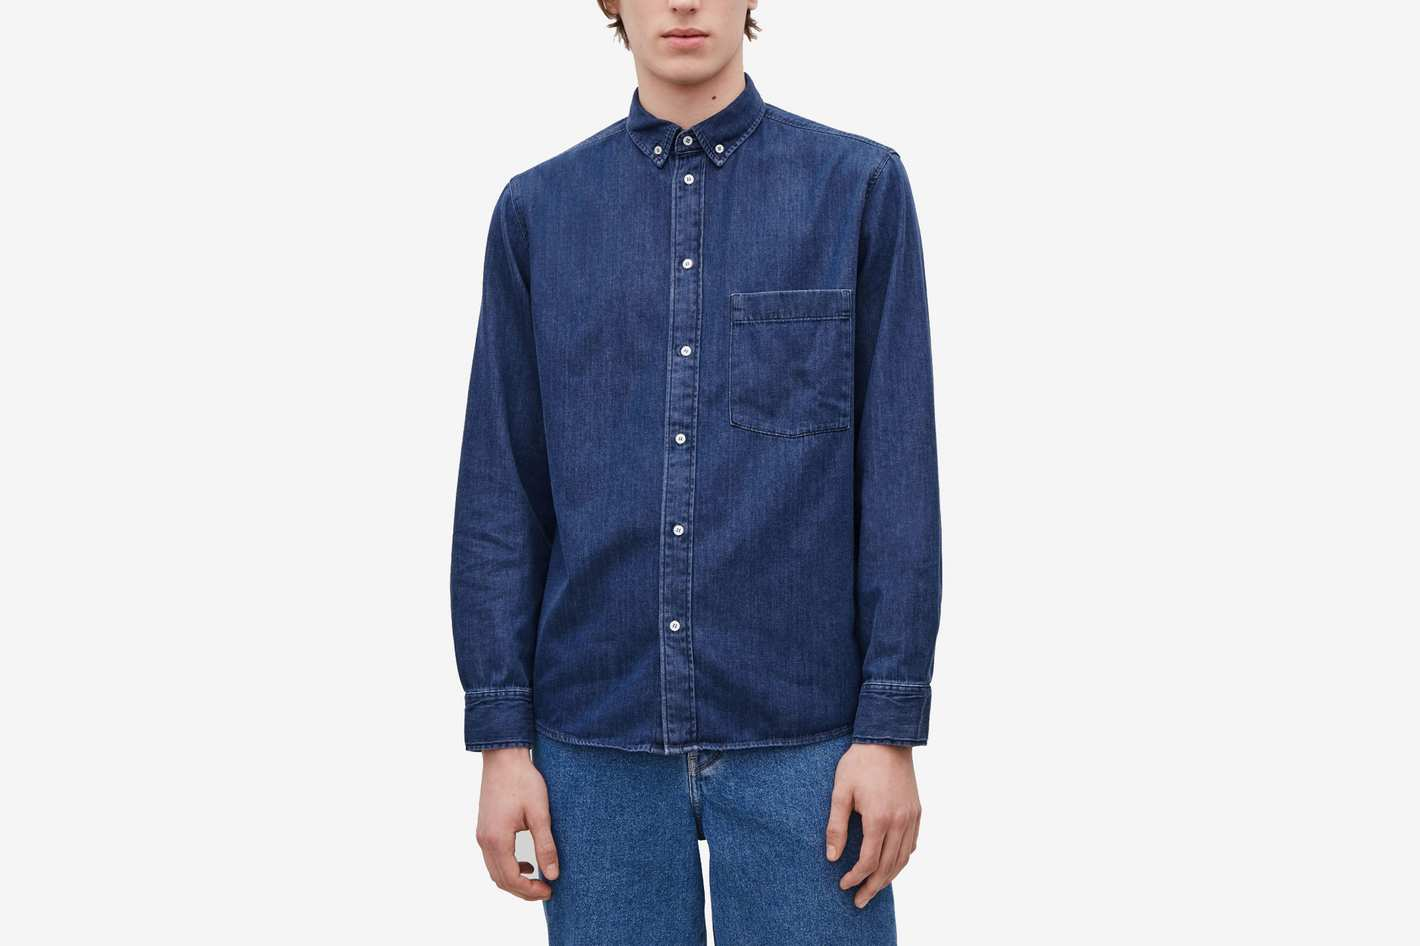 COS Denim Shirt, Dark Denim Blue